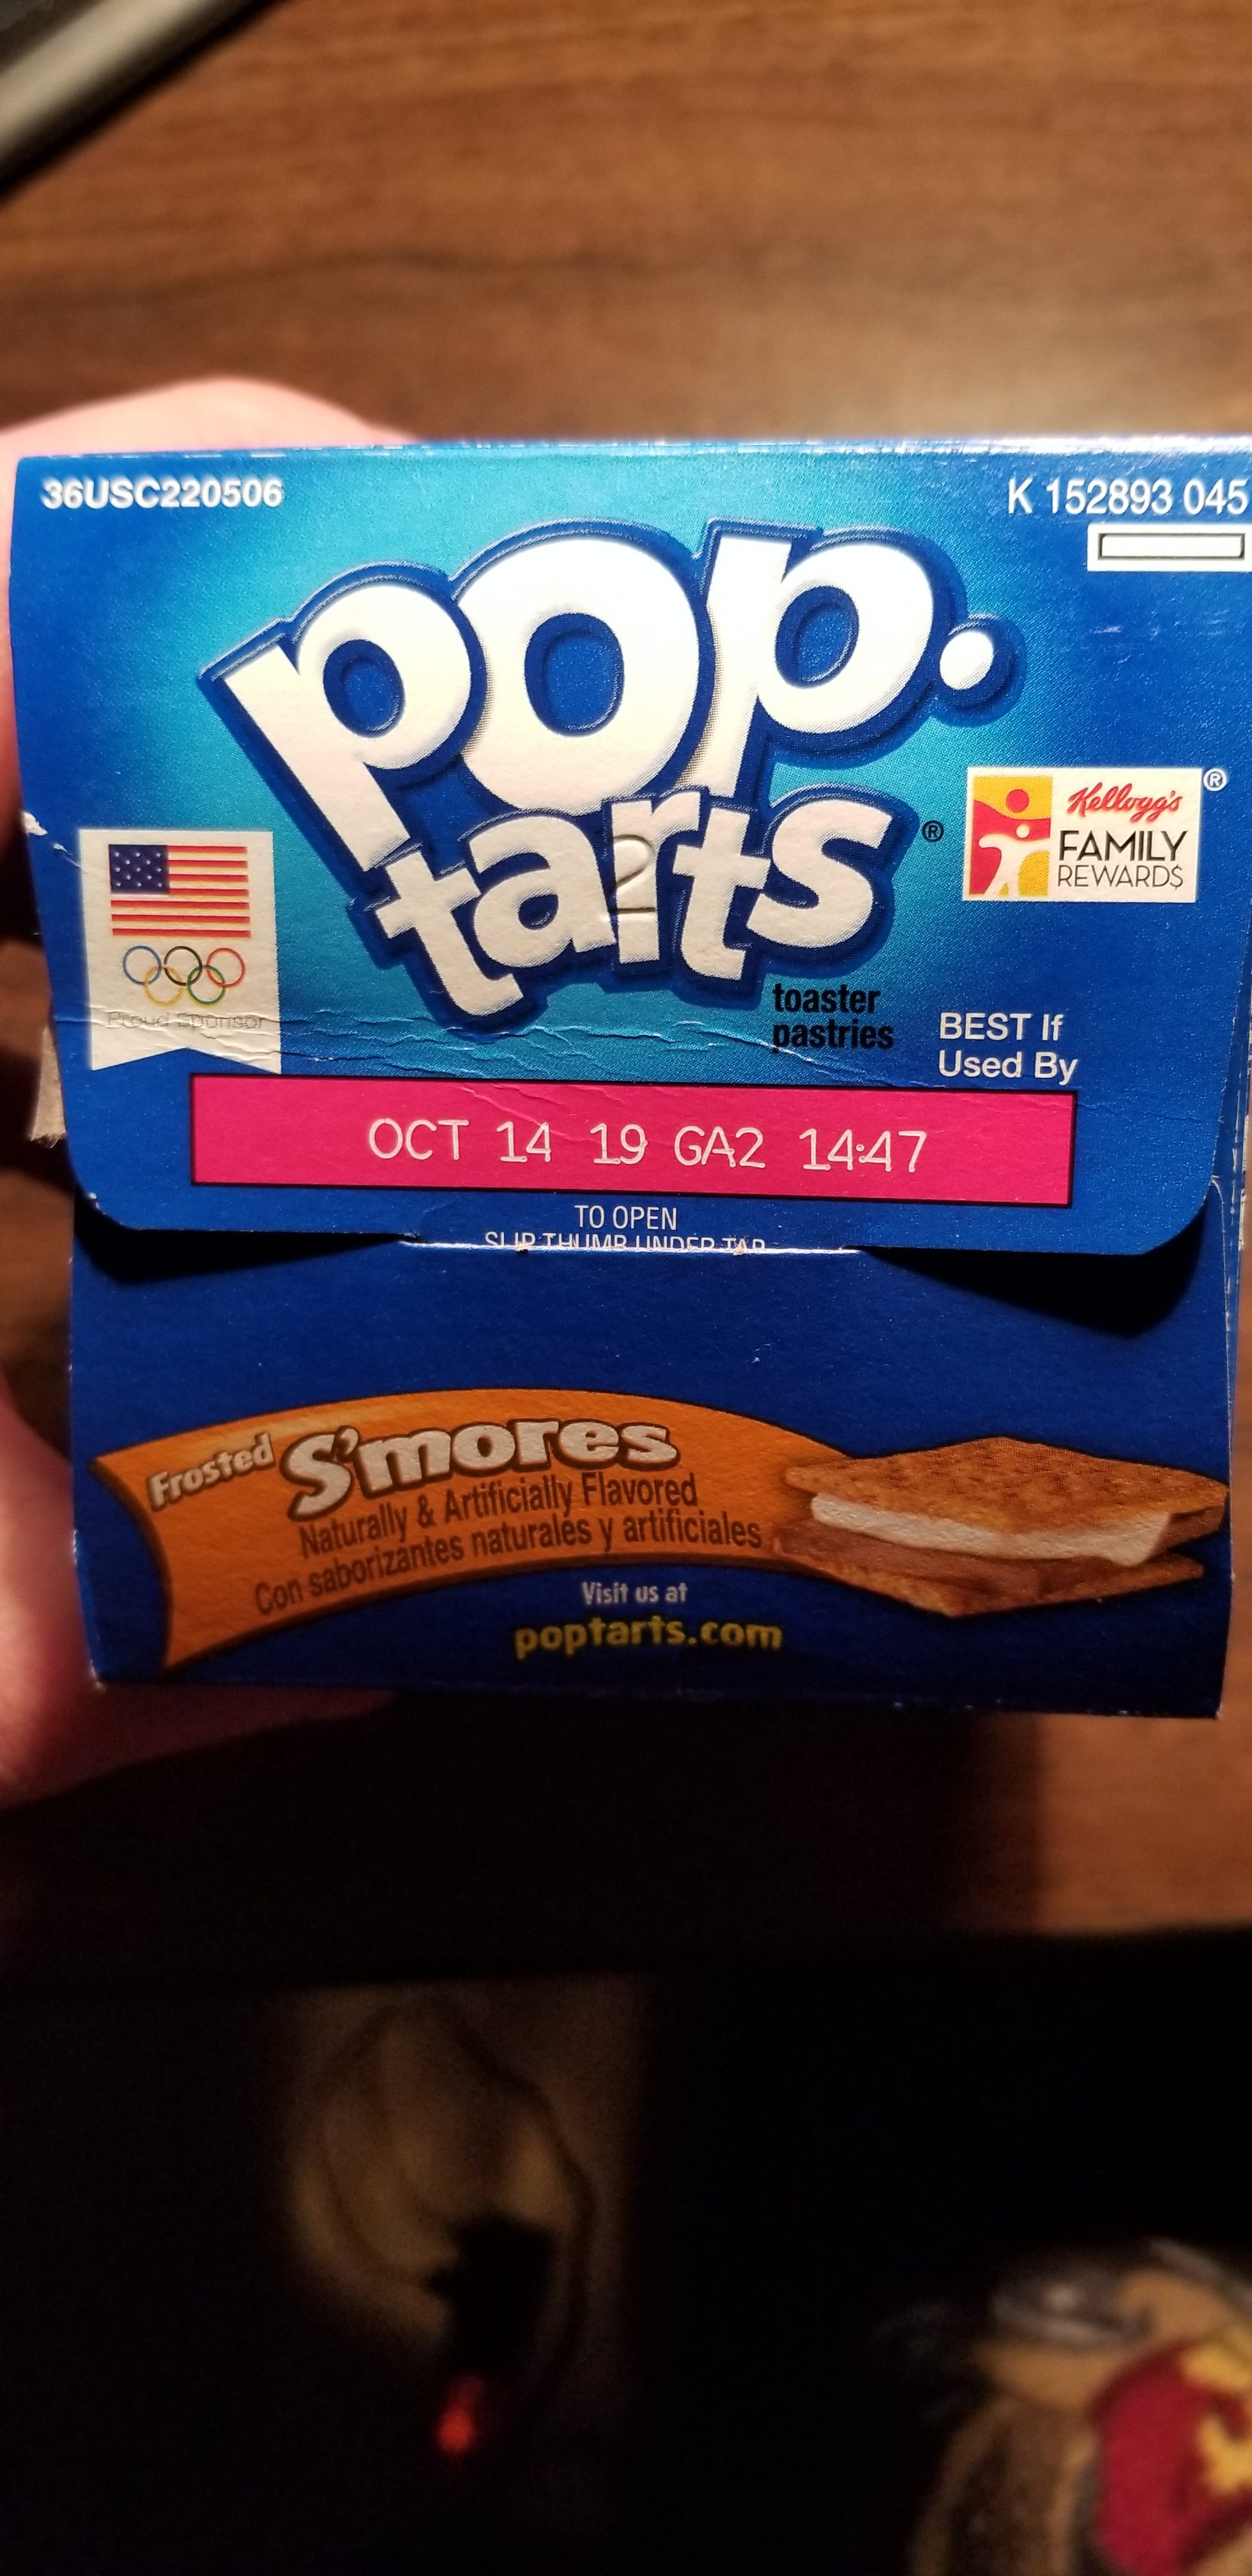 S'mores Pop-Tarts Top of the box